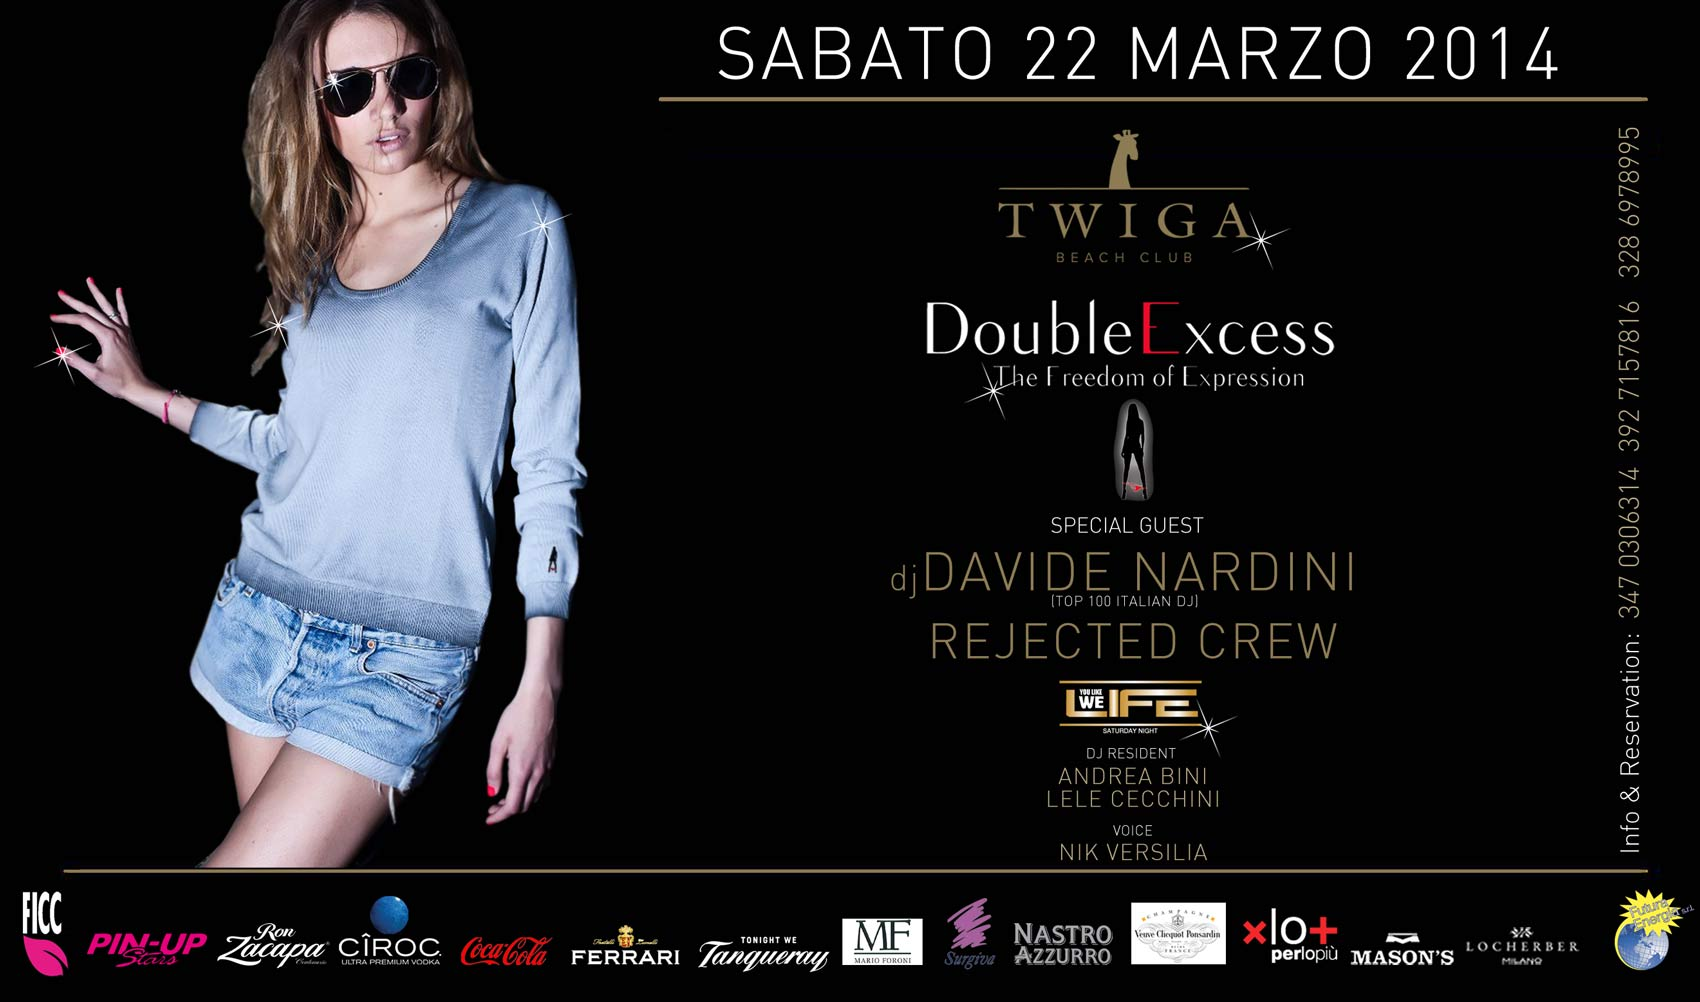 TWIGA-&-DOUBLE-EXCESS-Party-Davide-Nardini-Rejected-Crew